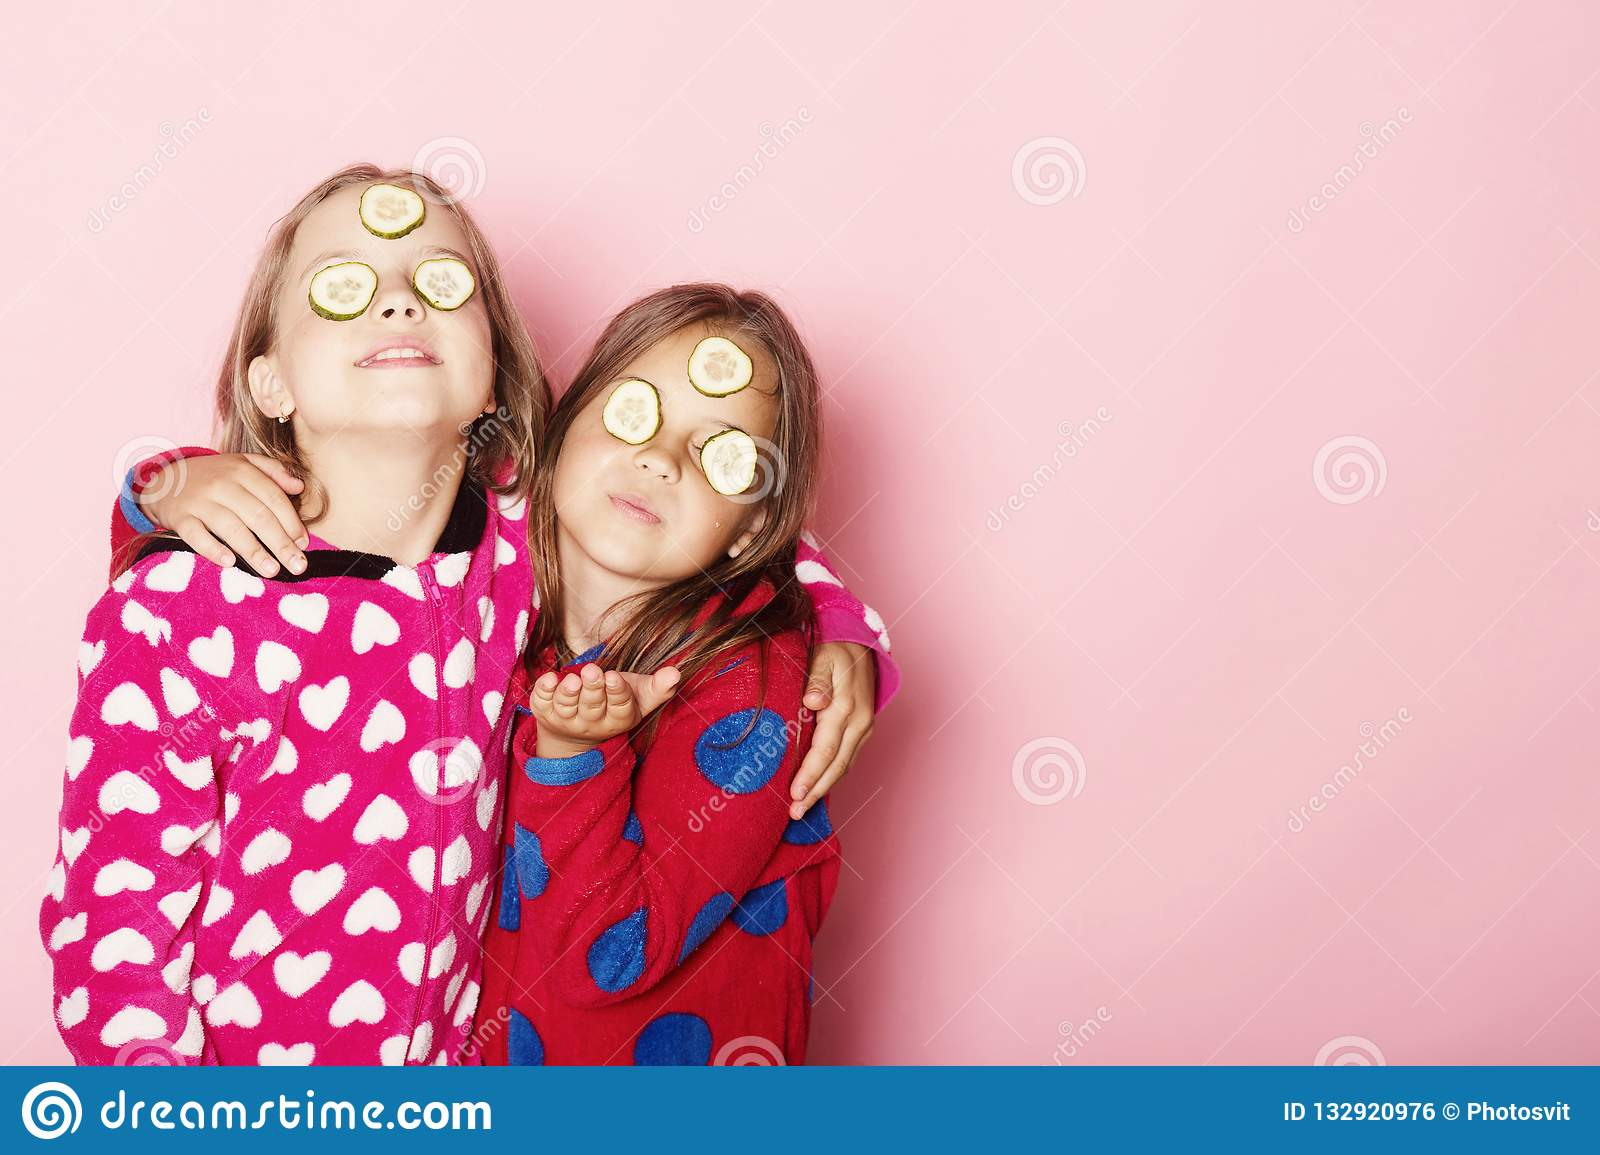 Girls in bright pink pajamas hug. Kids on pink background